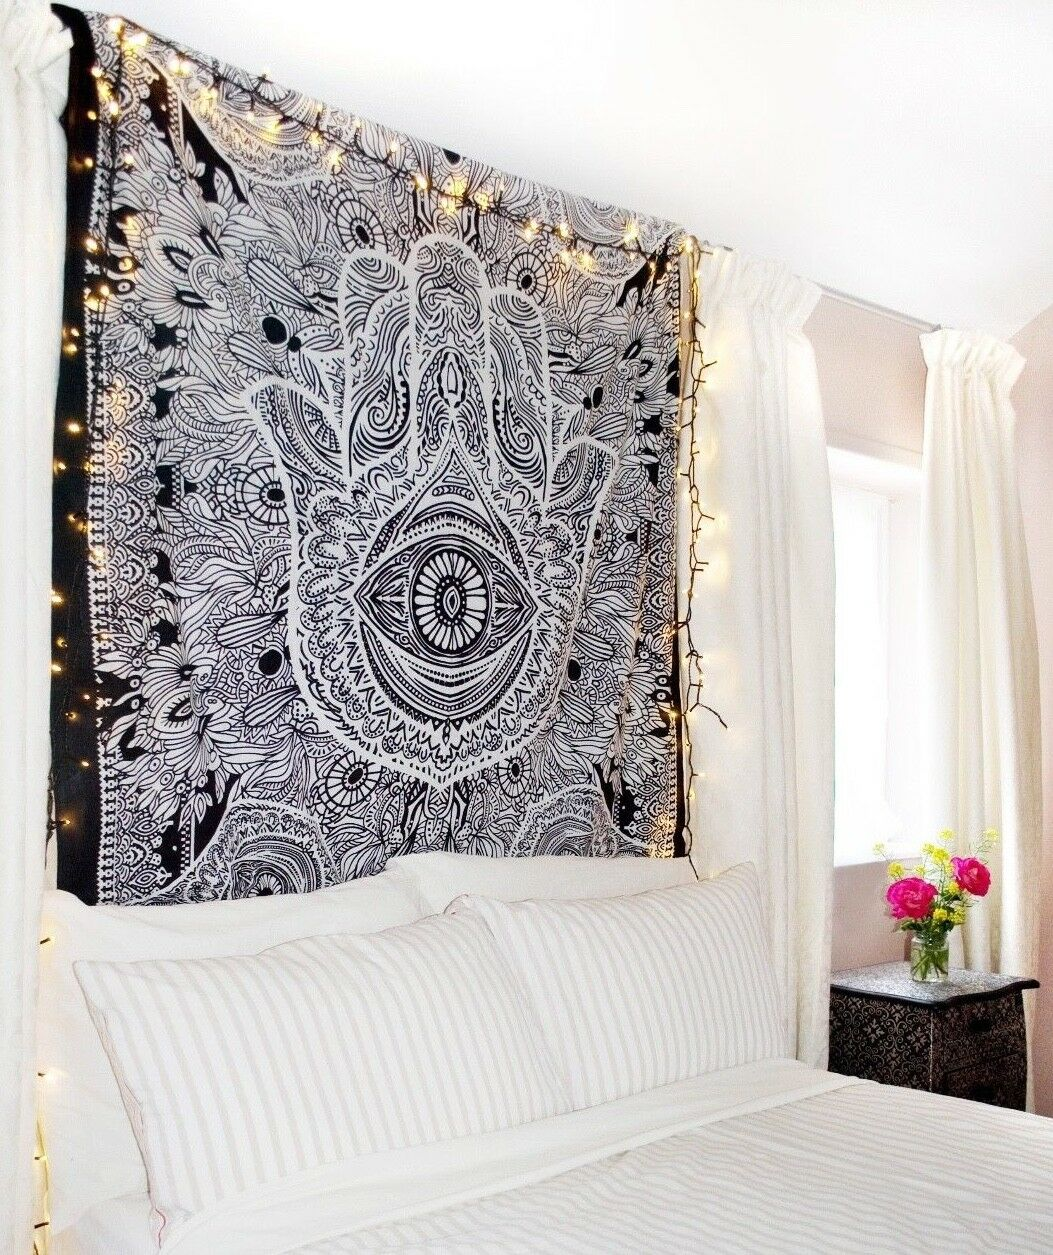 Main De Fatma Decoration Murale Details About Fatima Hand Hamsa Tapestry Indian Mandala Wall Hanging Throw Bedspread Decor Art